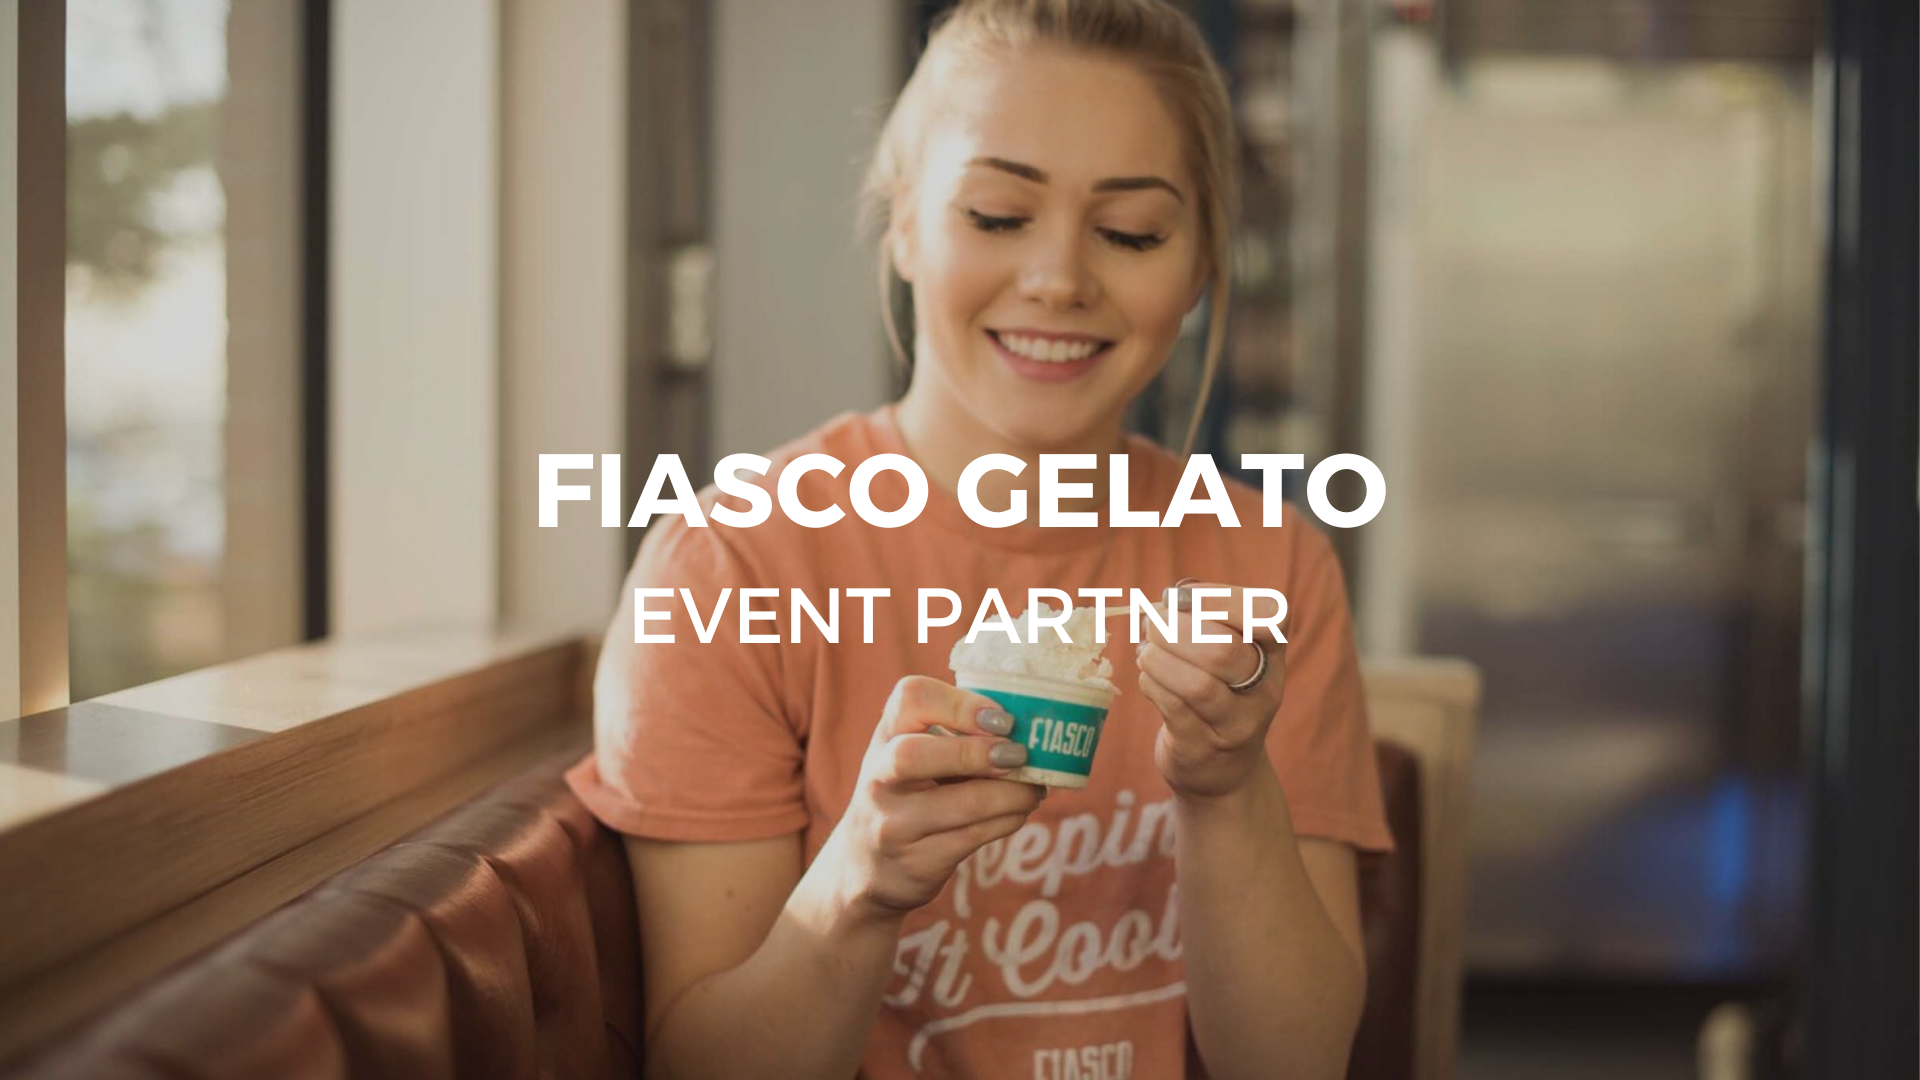 Fiasco Gelato is an artisan gelato company in Calgary Canada. Using fresh ingredients to make the world a happier place.